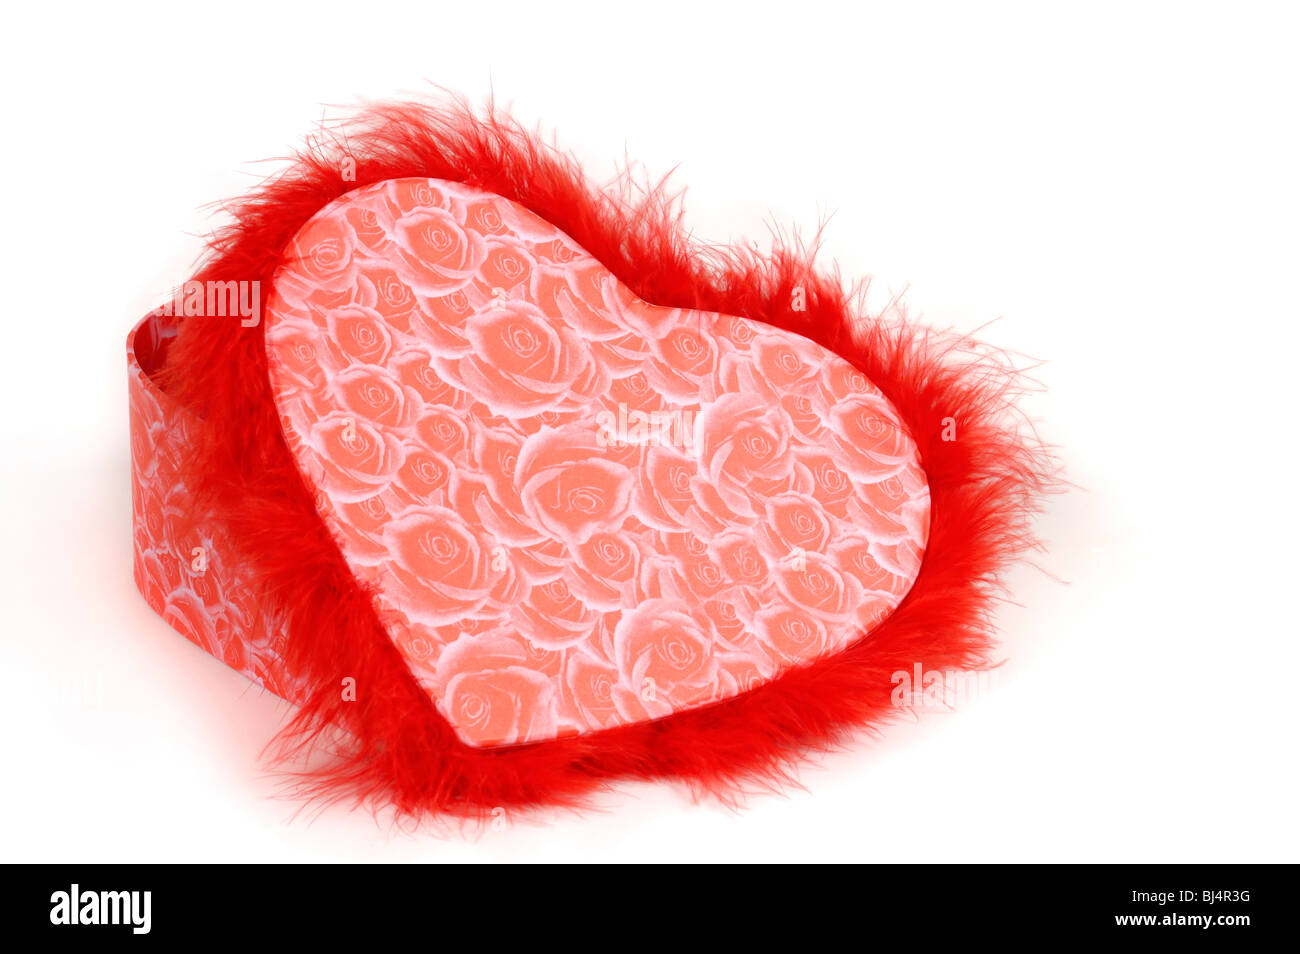 lovely heart shaped red